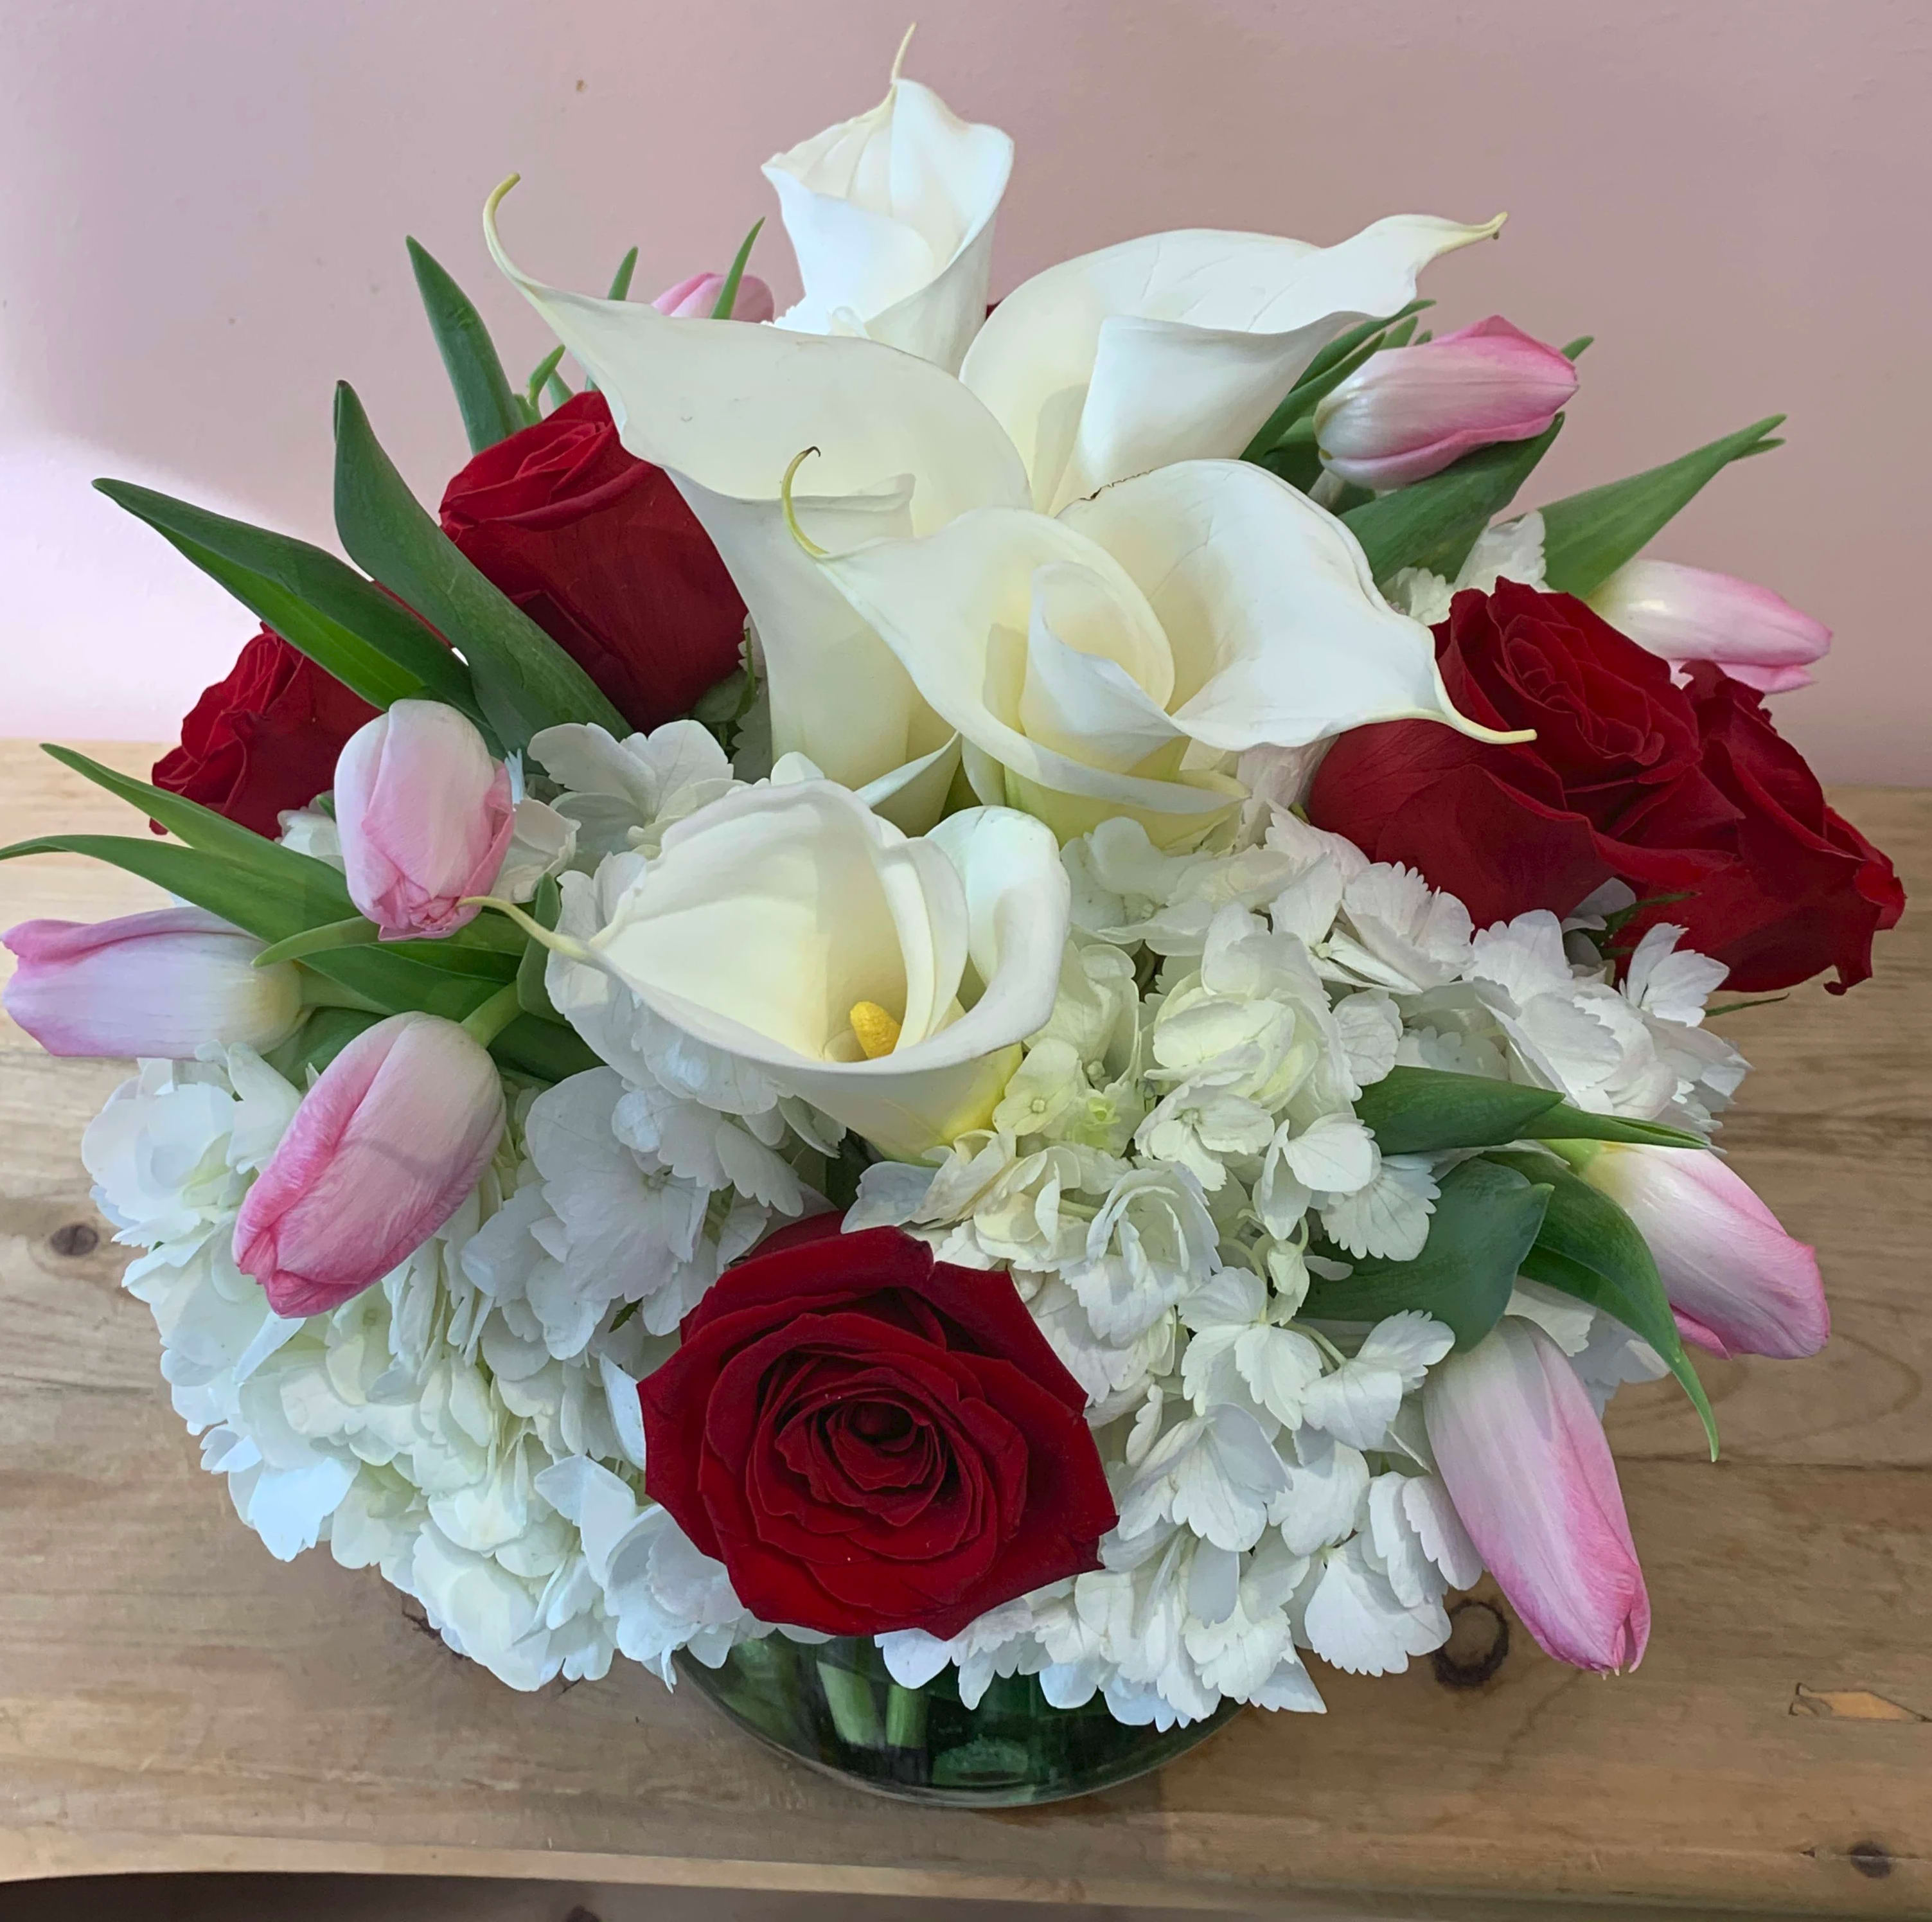 New Year Flowers- White Tulips with Red Roses